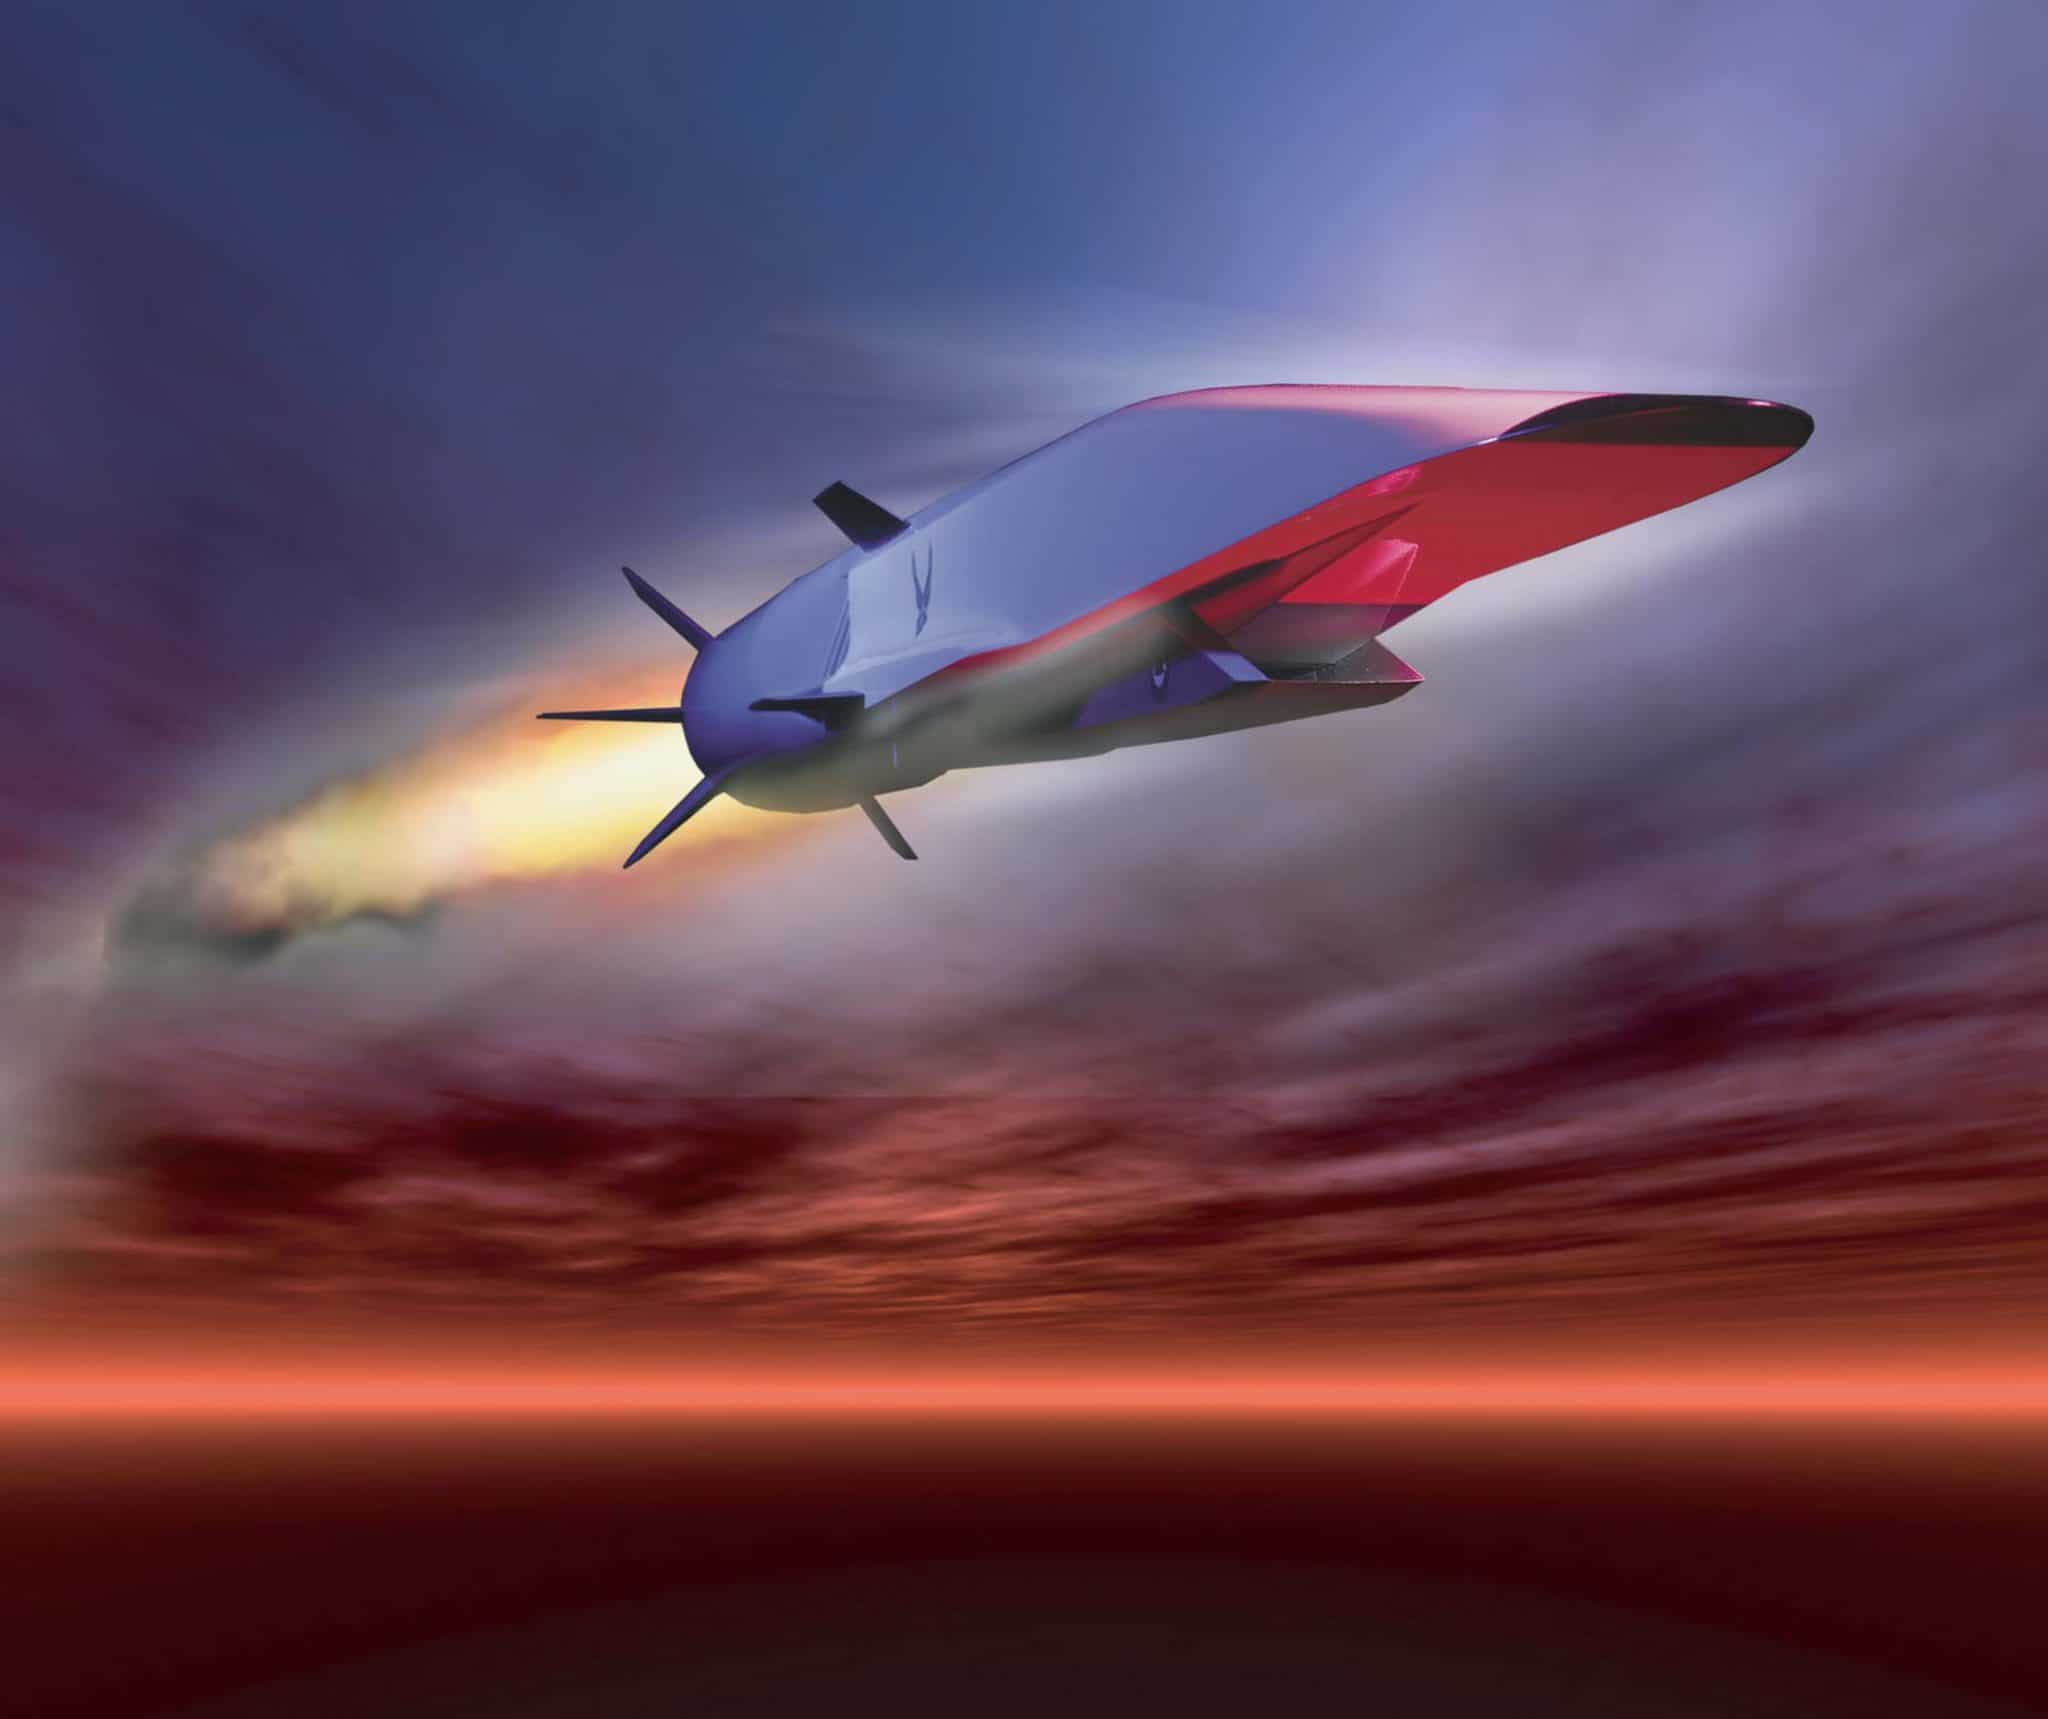 The unmanned Boeing X-51A Waveriders was built as a technology demonstrator for the Air Force, to pave the way to future hypersonic weapons. Credit: US Air Force graphic